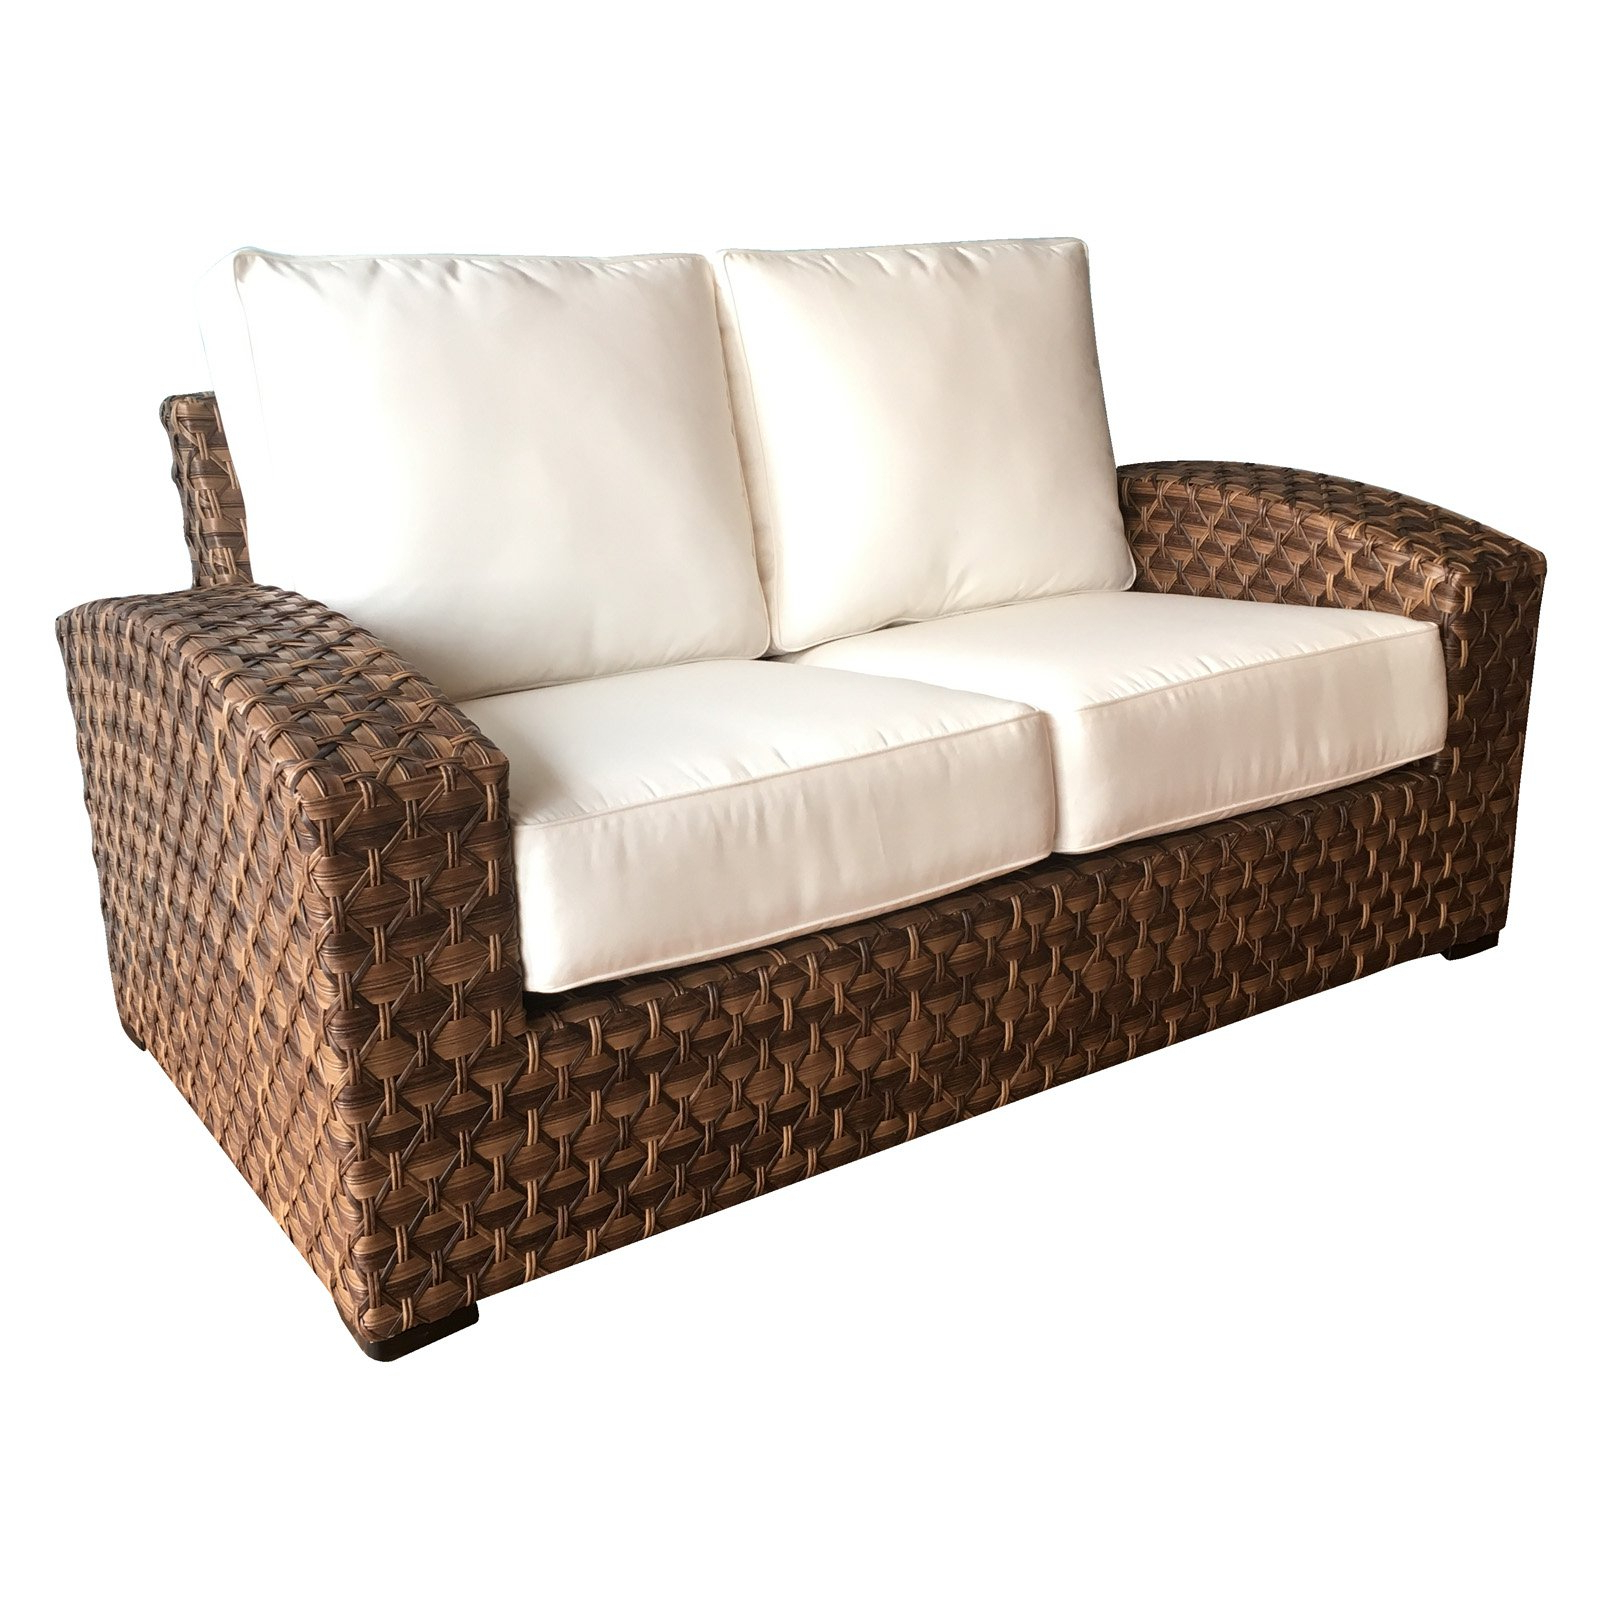 Avadi Outdoor Sofas & Ottomans 3 Piece Set Pertaining To Well Known Outdoor Wicker Paradise Westbury Loveseat With Sunbrella (Gallery 8 of 25)